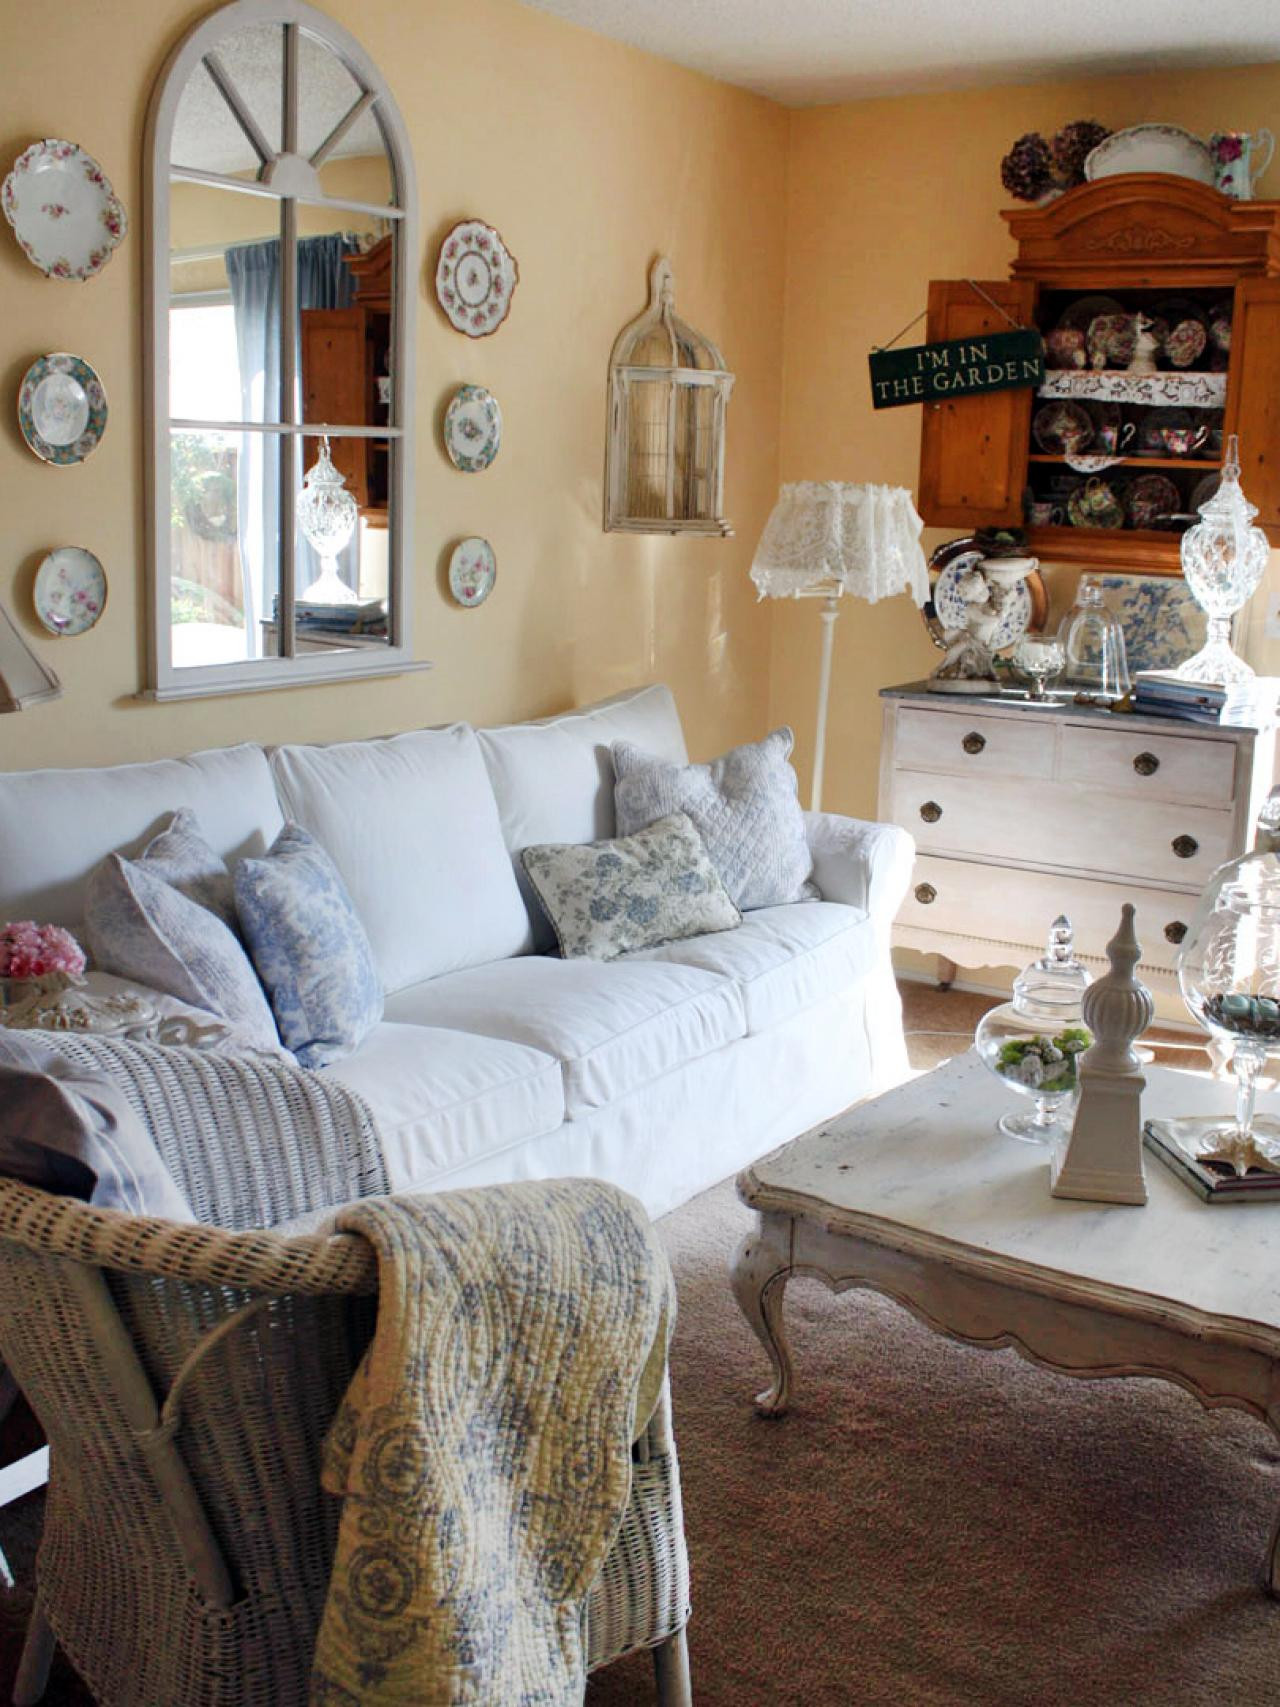 Best ideas about Shabby Chic Living Room Ideas . Save or Pin Shabby Chic Cottage Living Room Now.